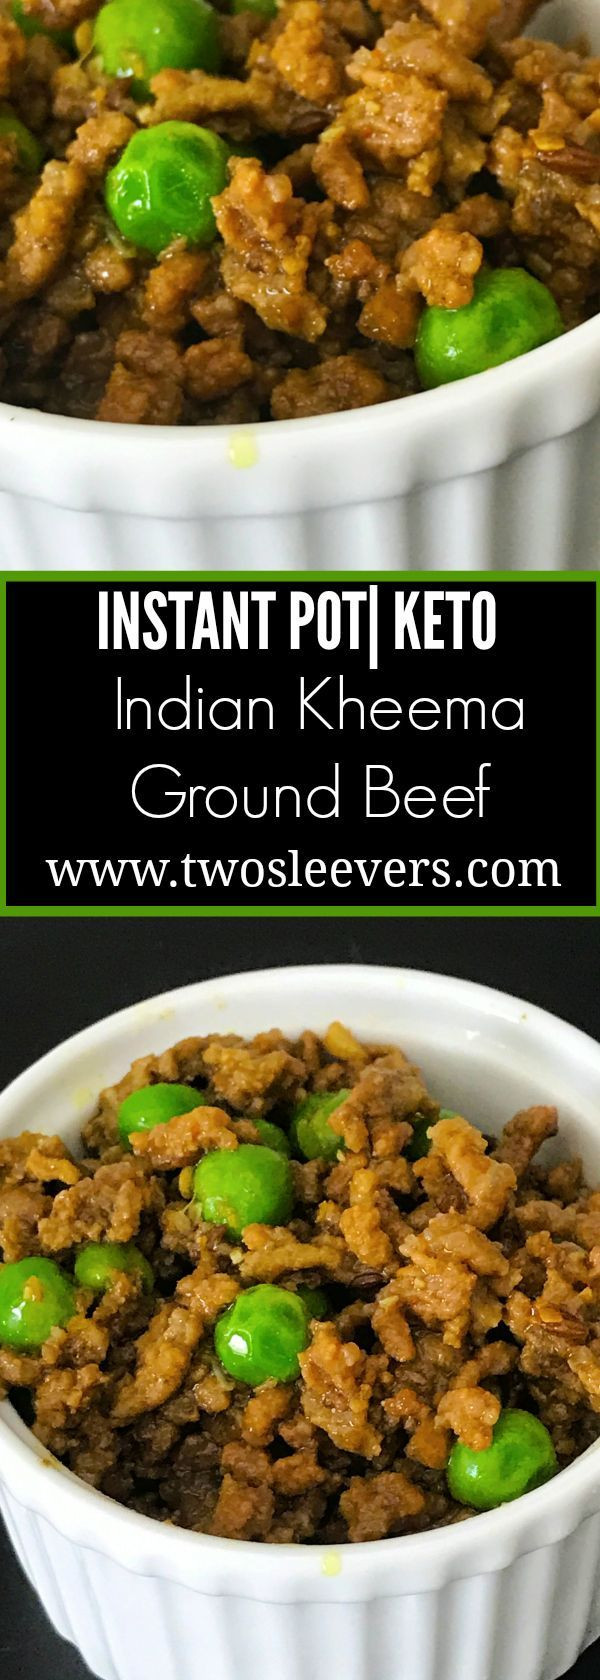 Ground Beef Keto Instant Pot Recipes  Instant Pot Keto Indian Kheema Easy low carb recipe for